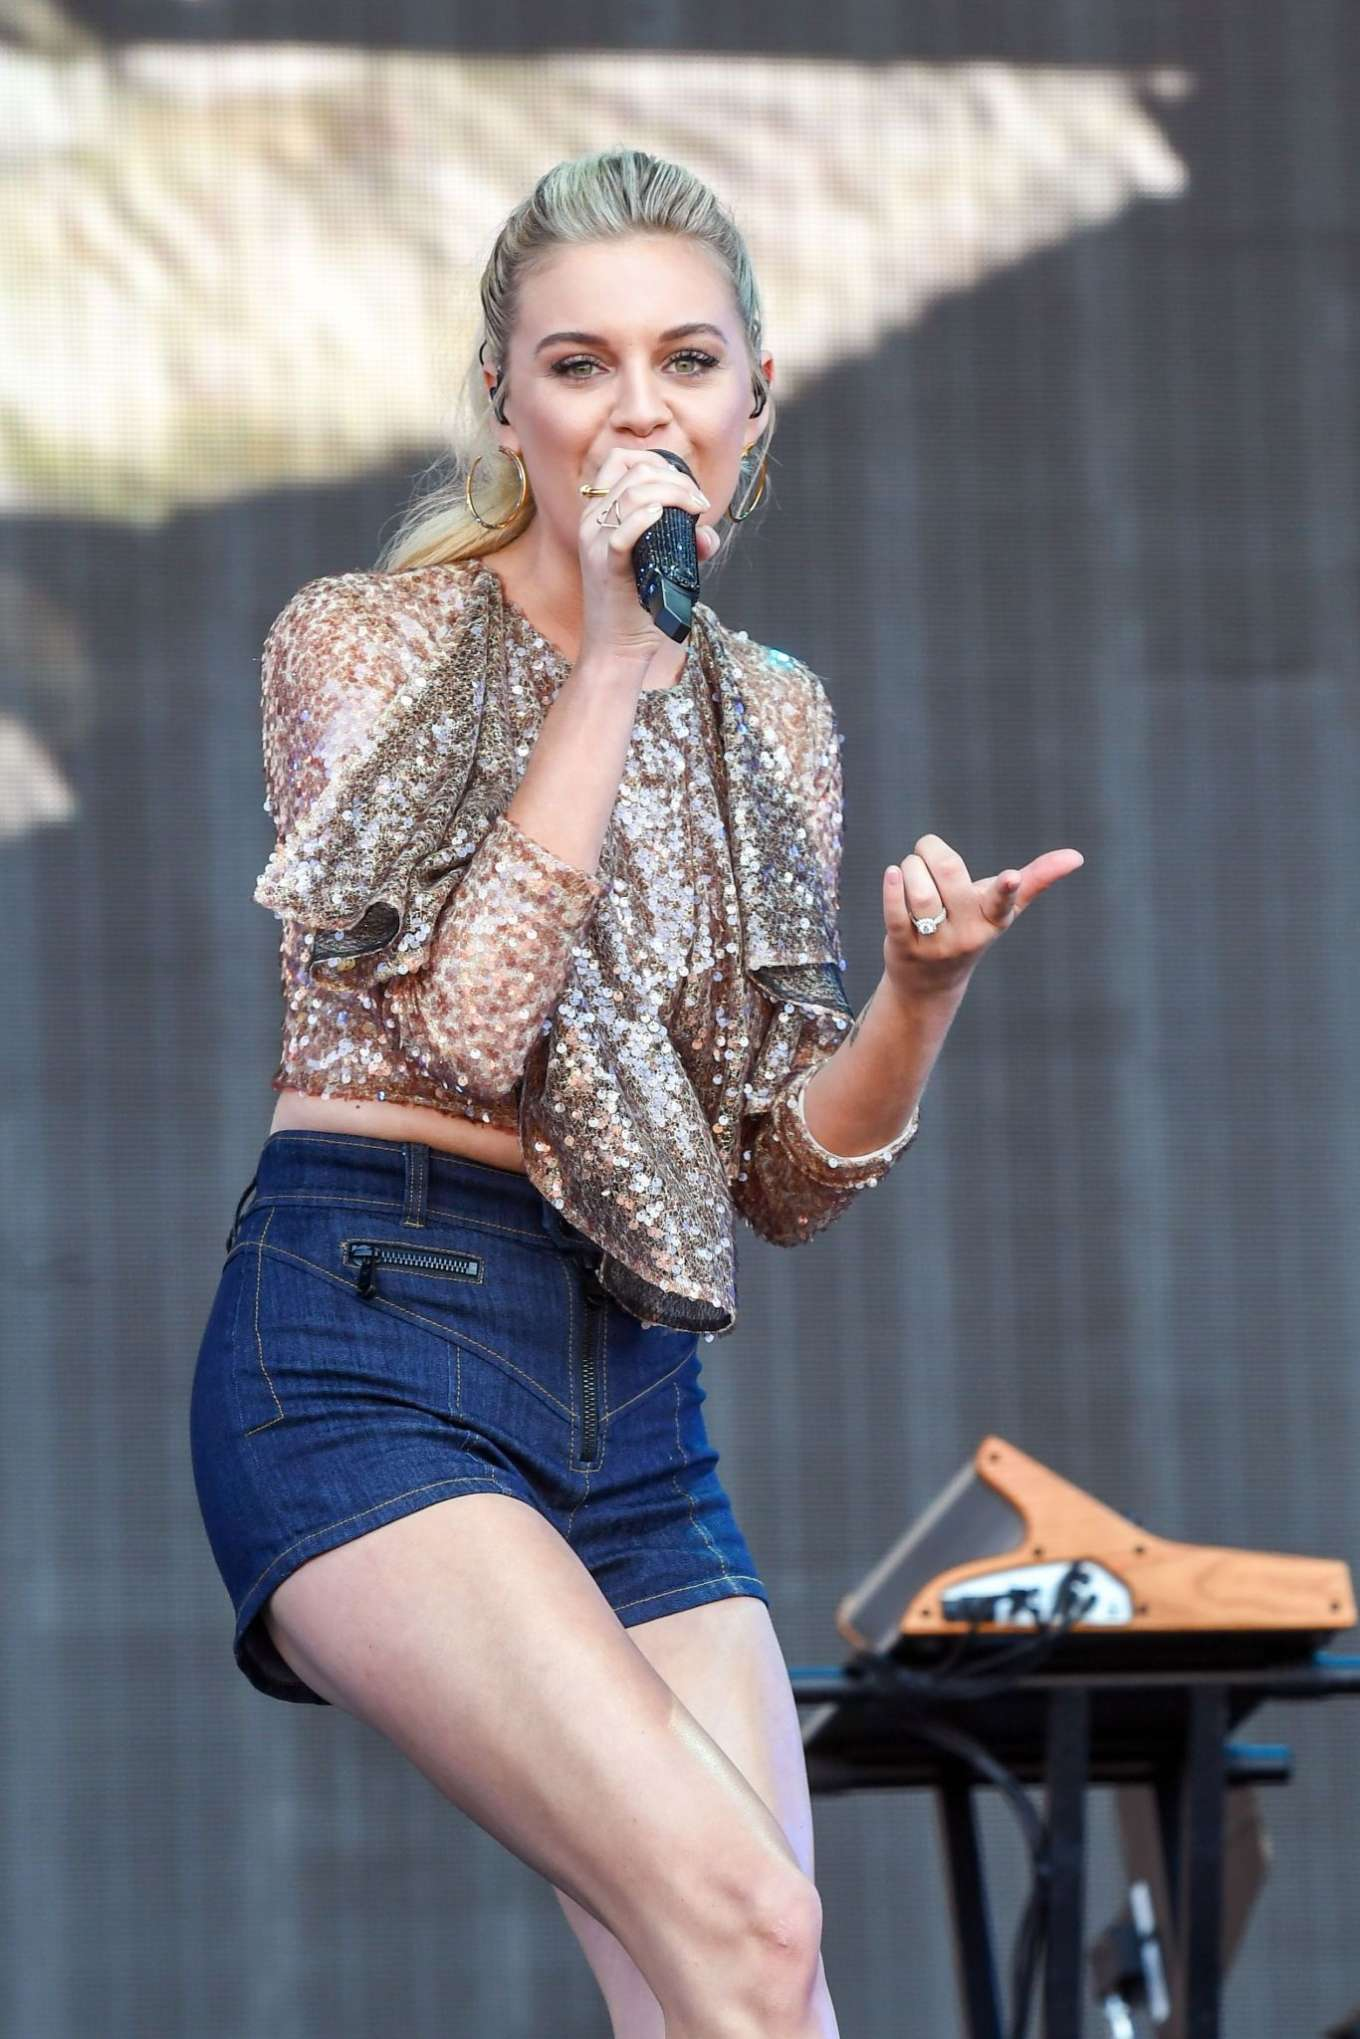 Kelsea Ballerini - Performs at BBC2 Radio Live 2019 in London